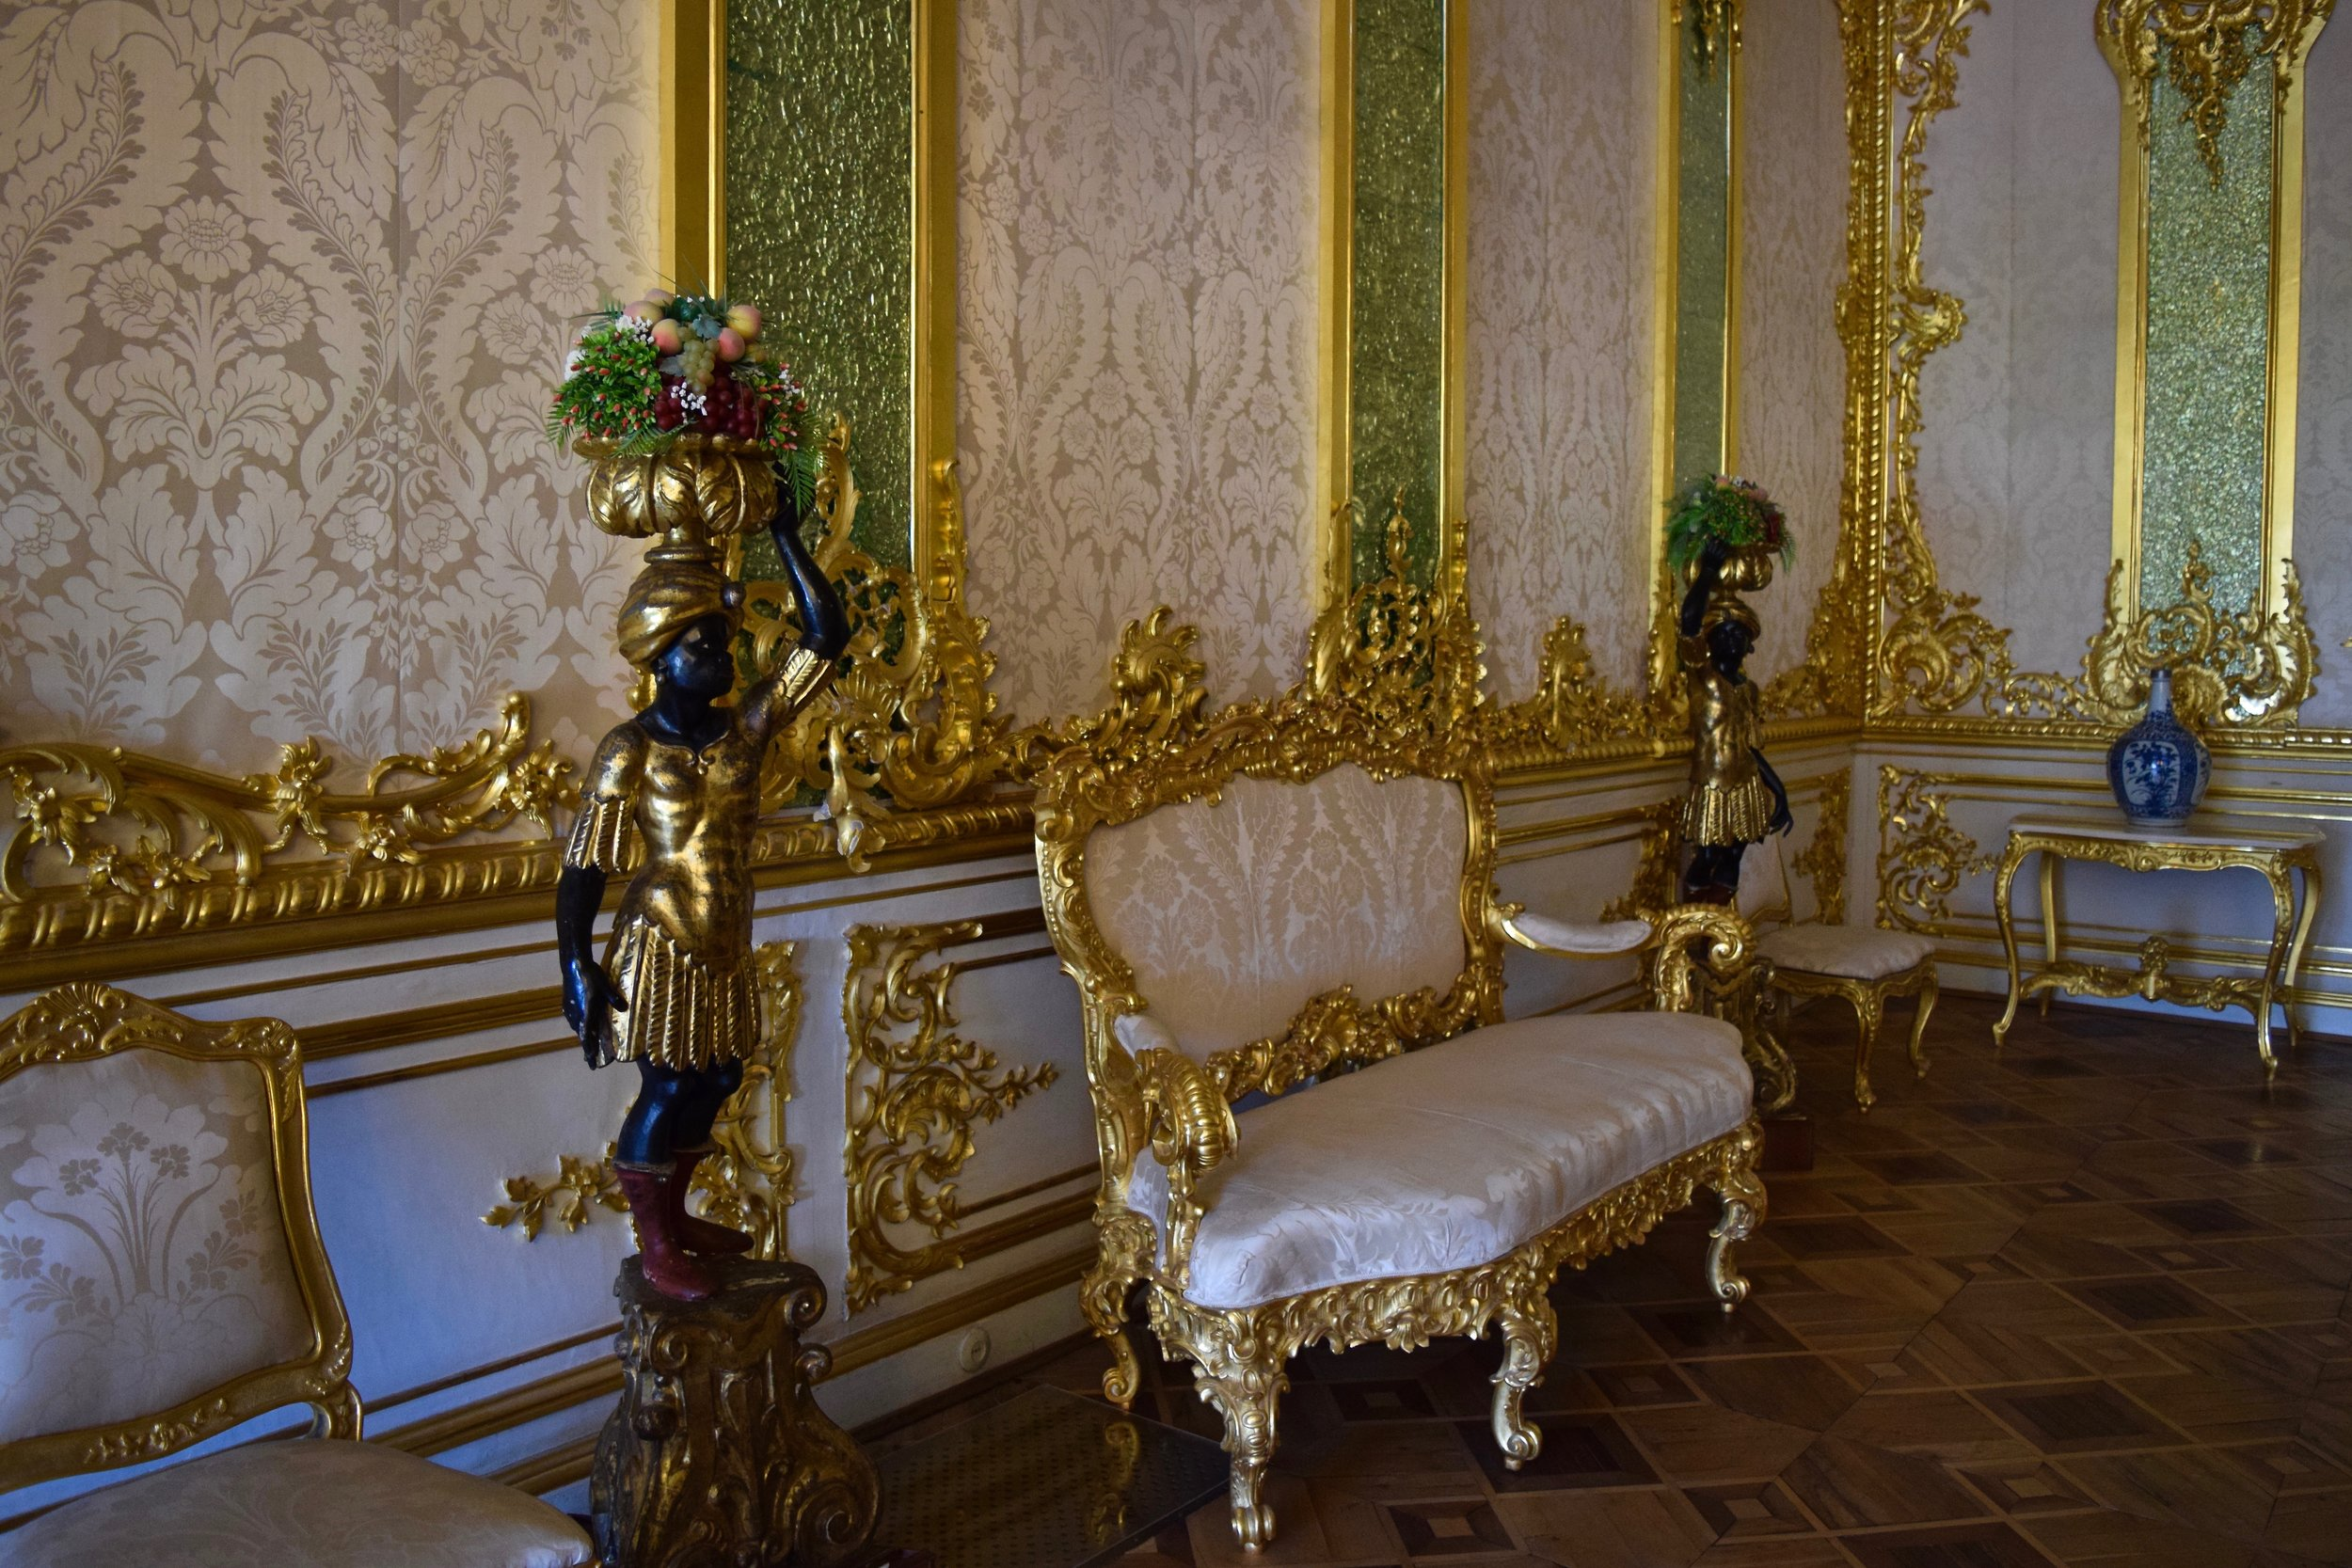 Room inside the palace